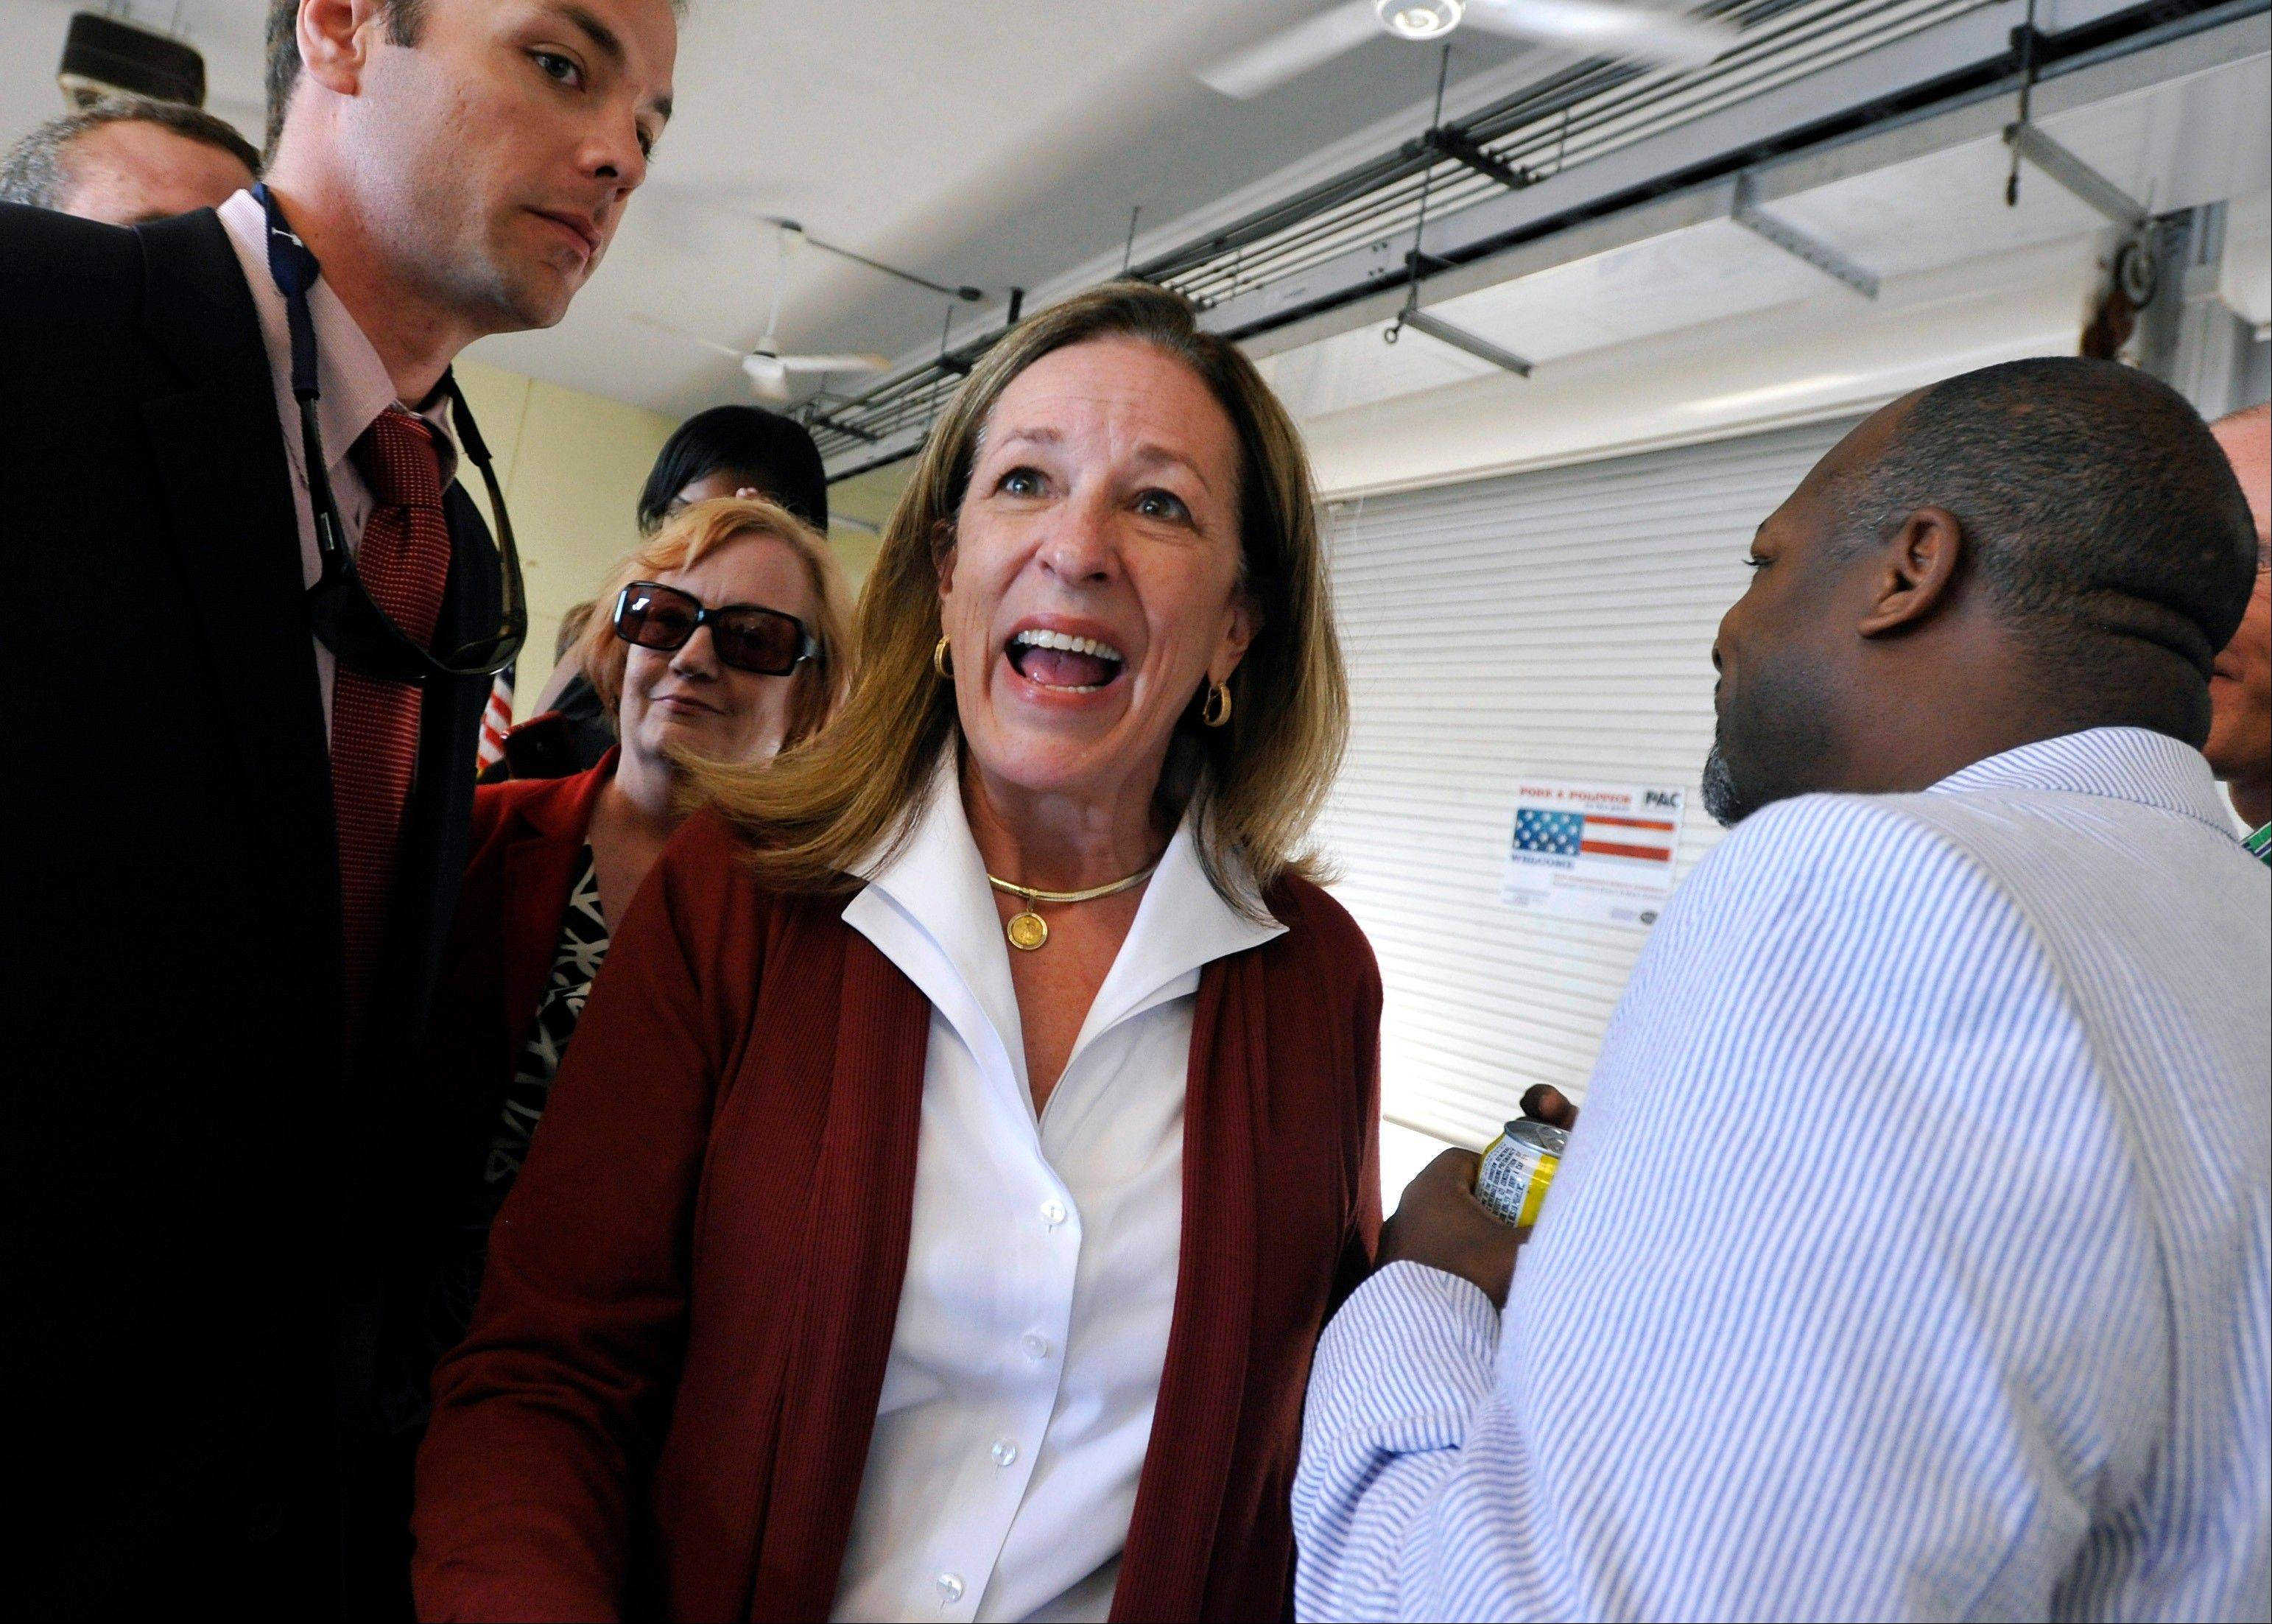 Associated PressDemocratic candidate Elizabeth Colbert Busch, center, speaks with attendees Tuesday during a campaign stop at the Charleston Maritime Center in Charleston, S.C.